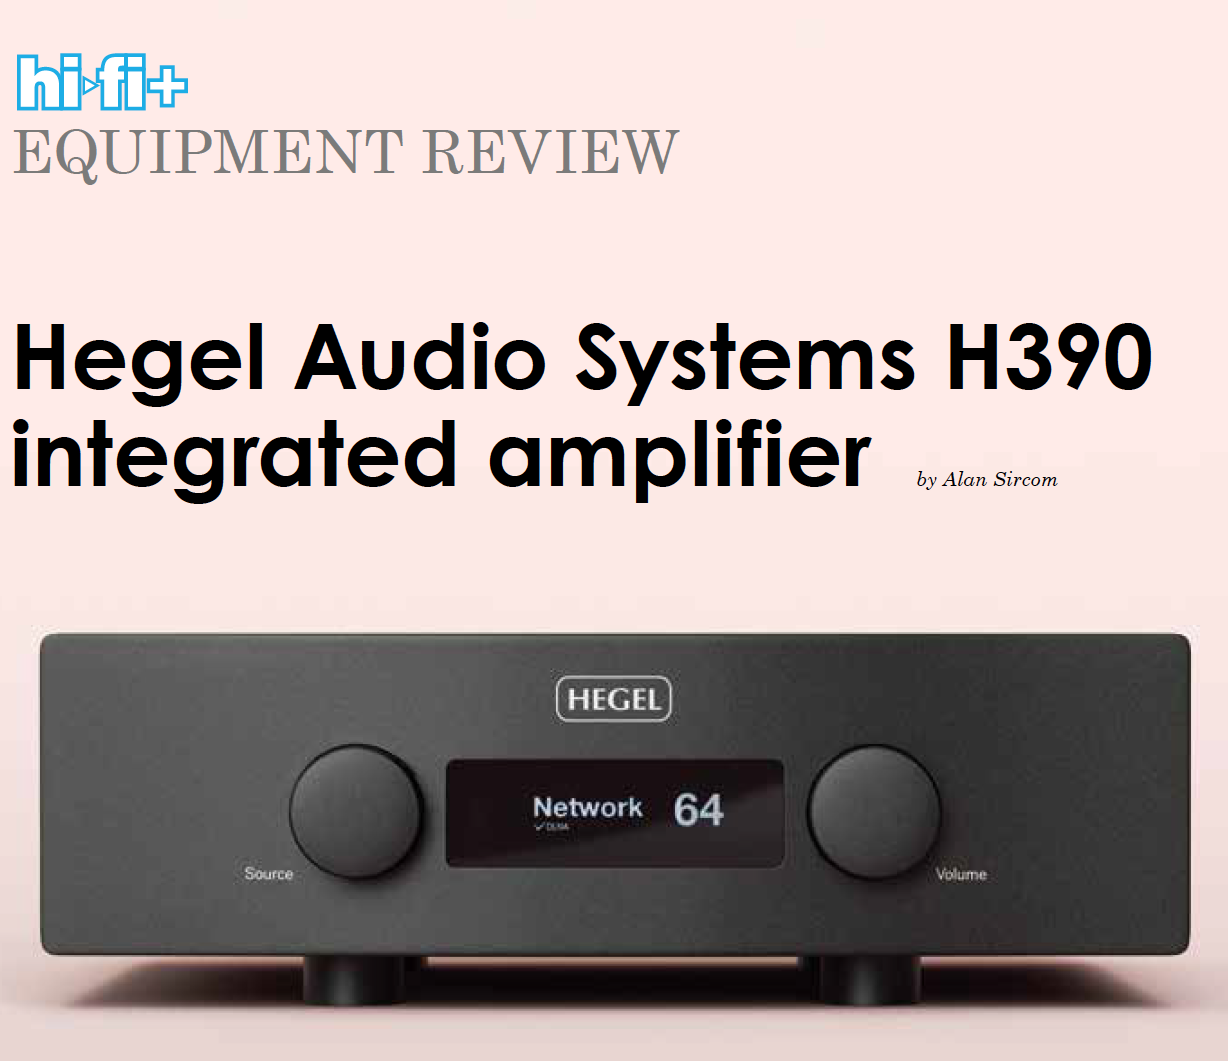 Hegel's H390 gets a WOW|